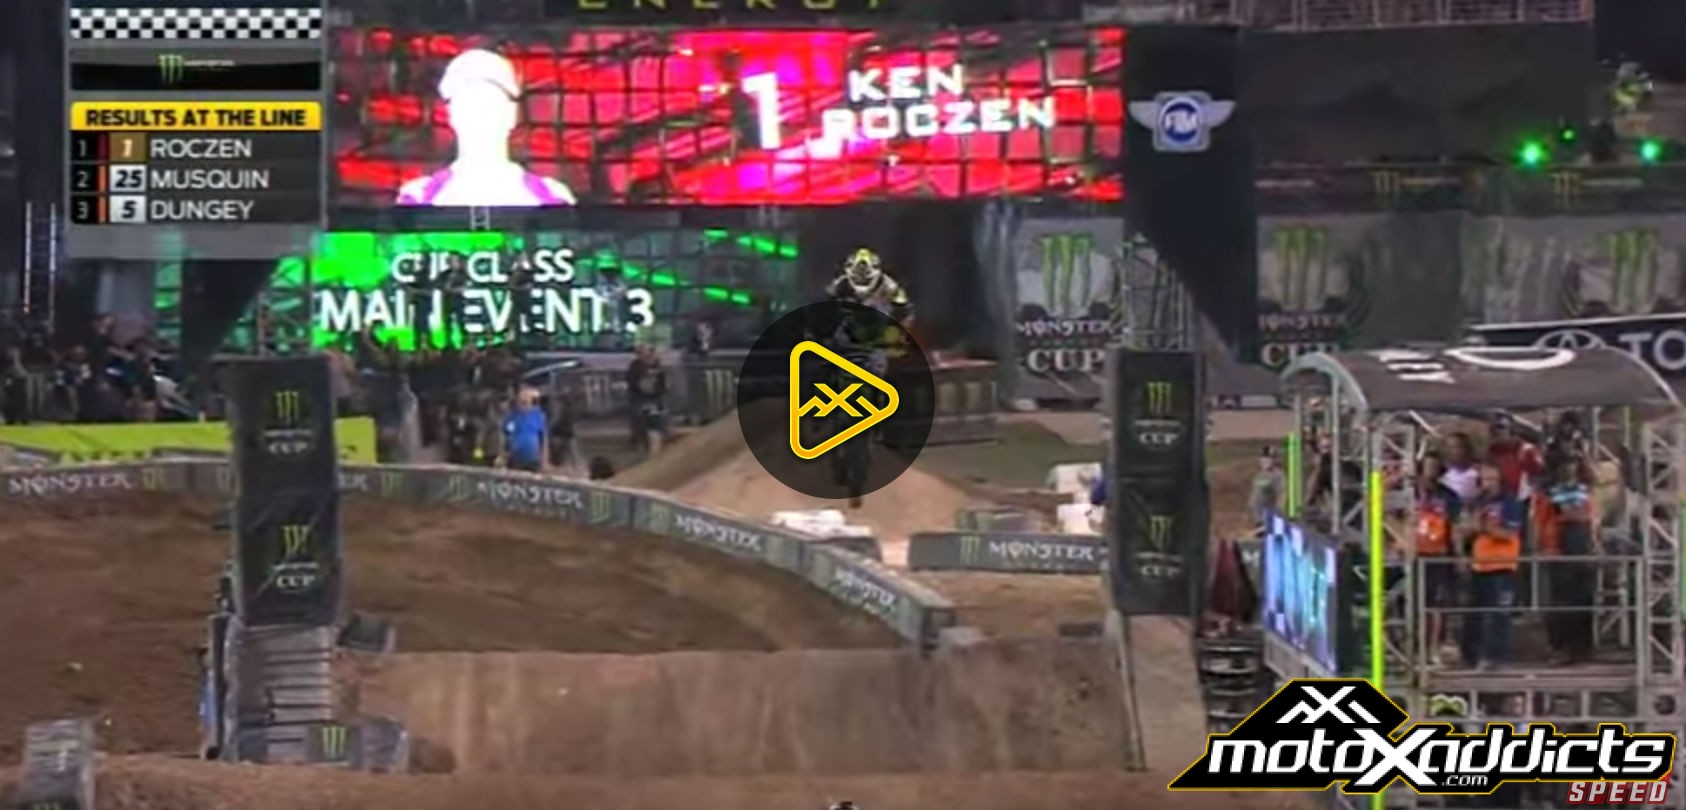 Main Event 3 Highlights – 2016 Monster Energy Cup